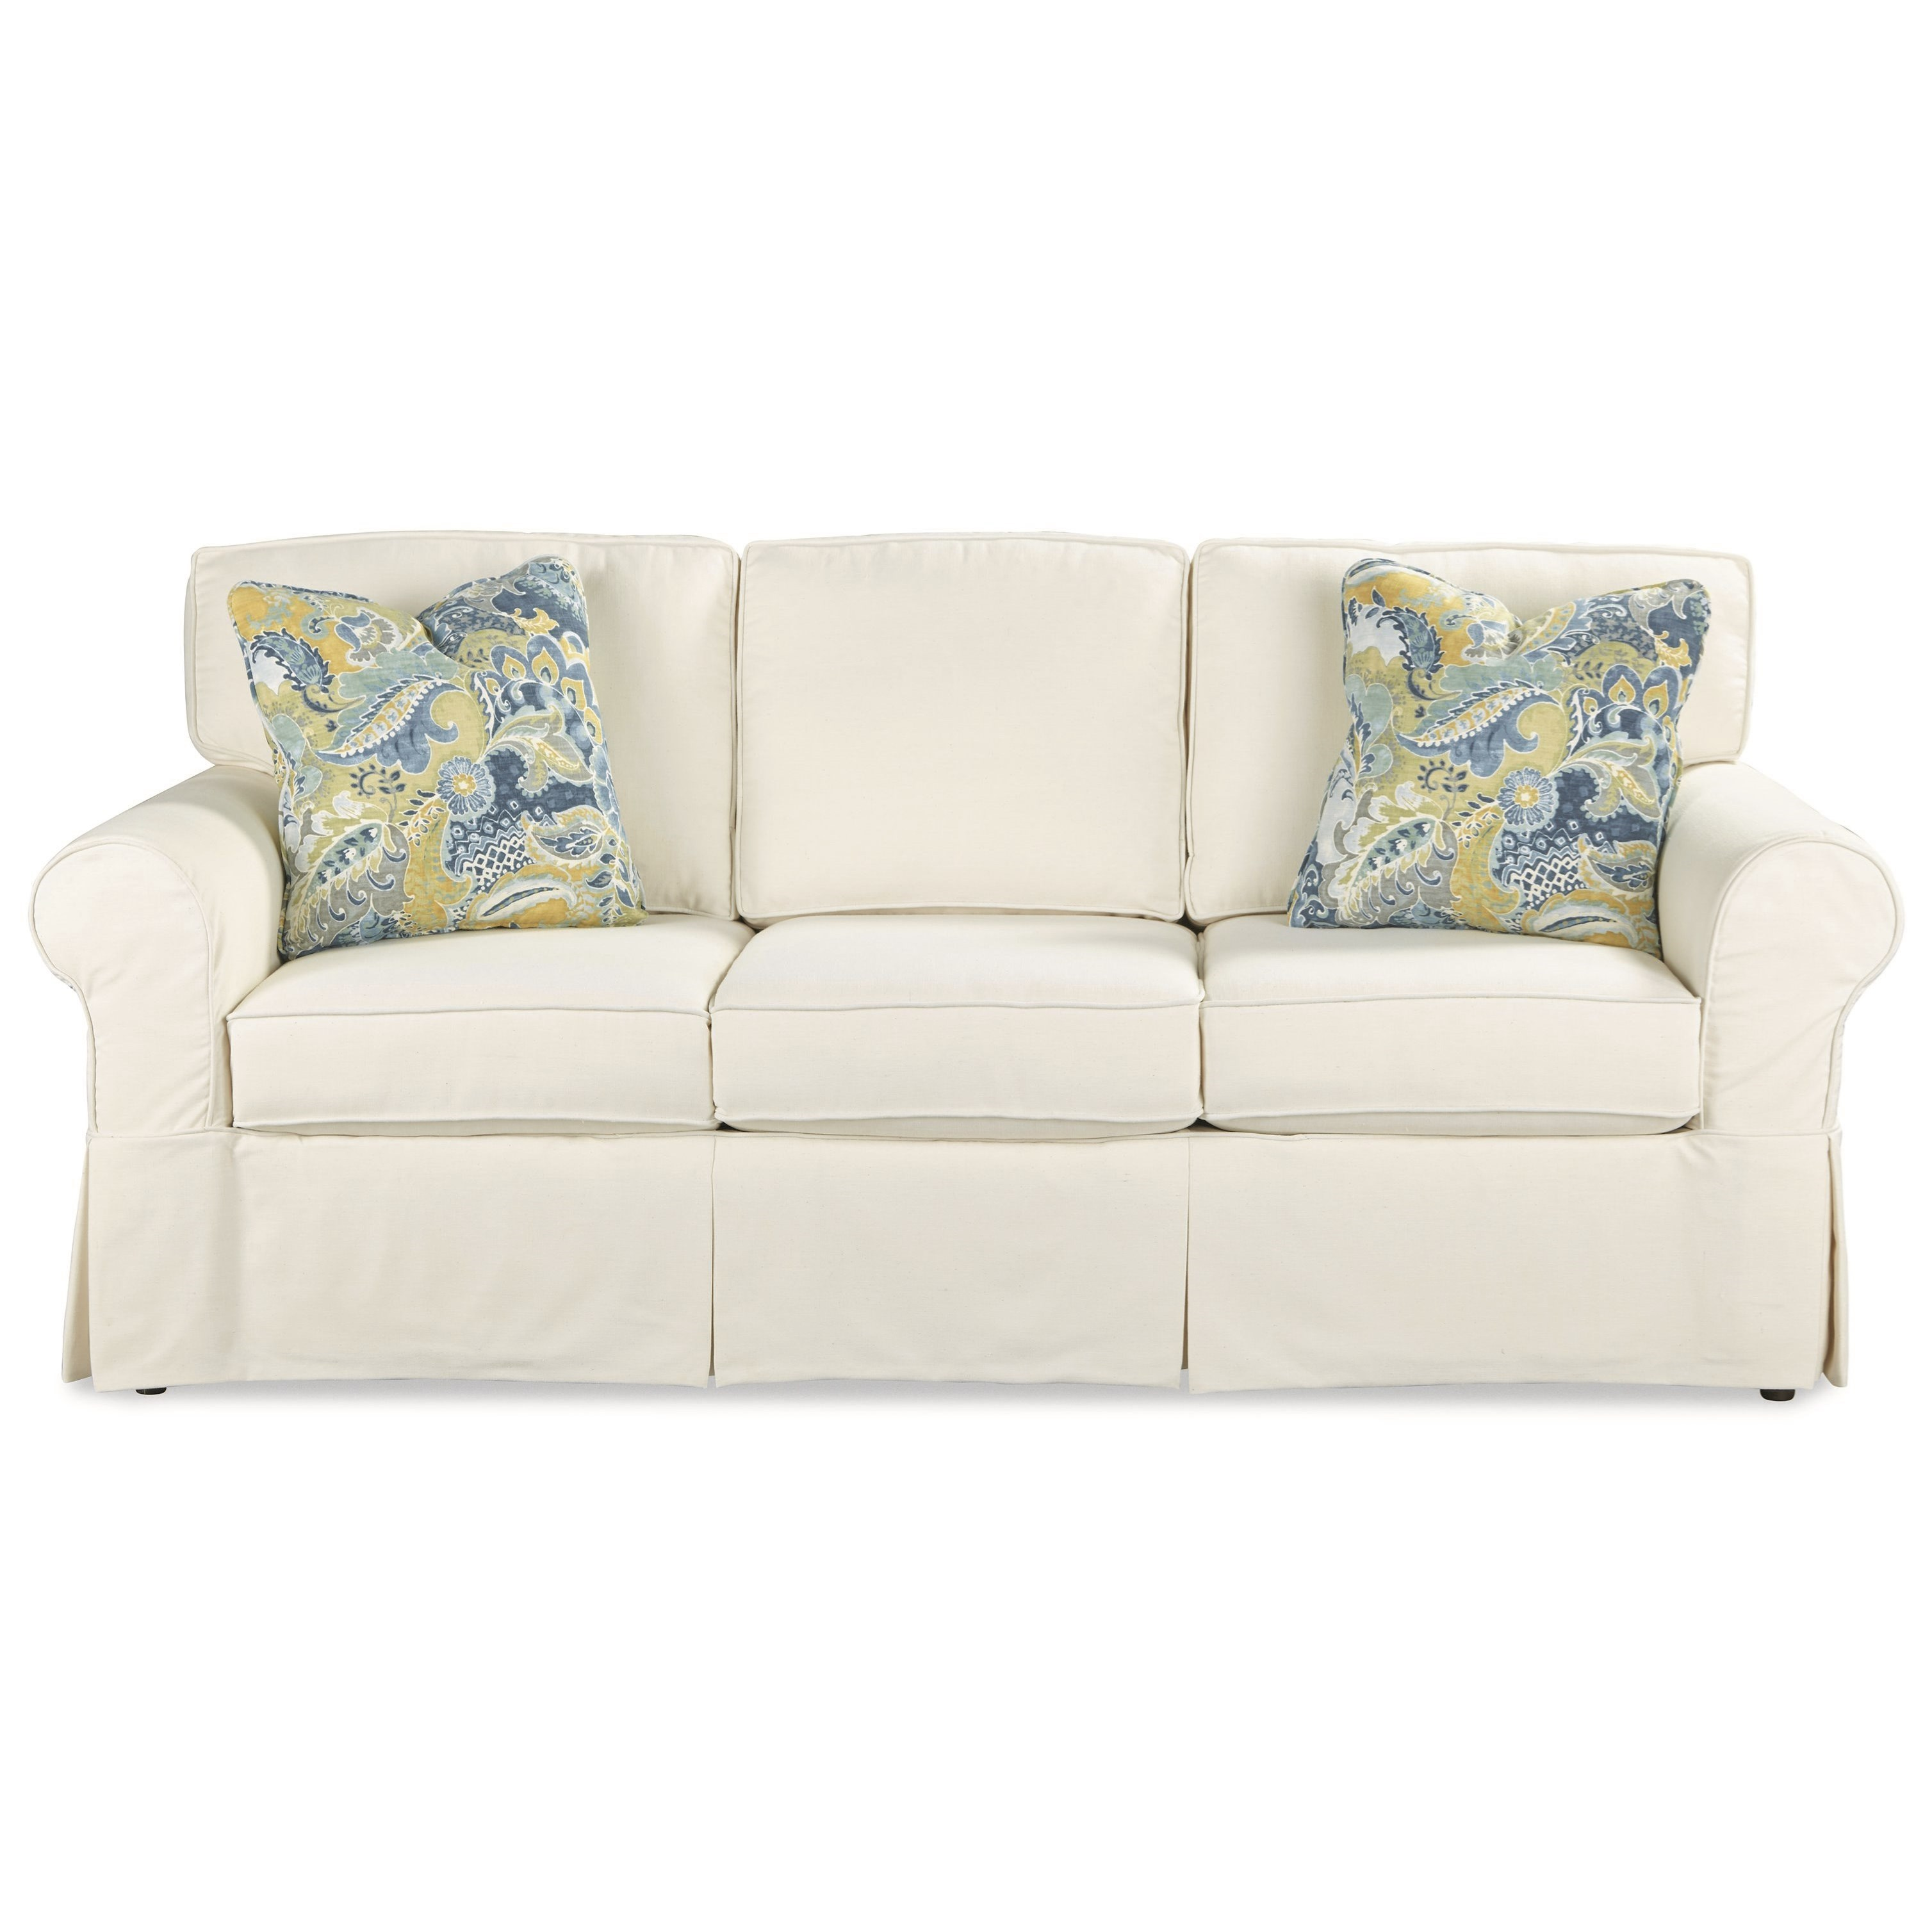 Casual slipcover sleeper sofa with queen innerspring mattress by craftmaster wolf and gardiner Sleeper sofa covers